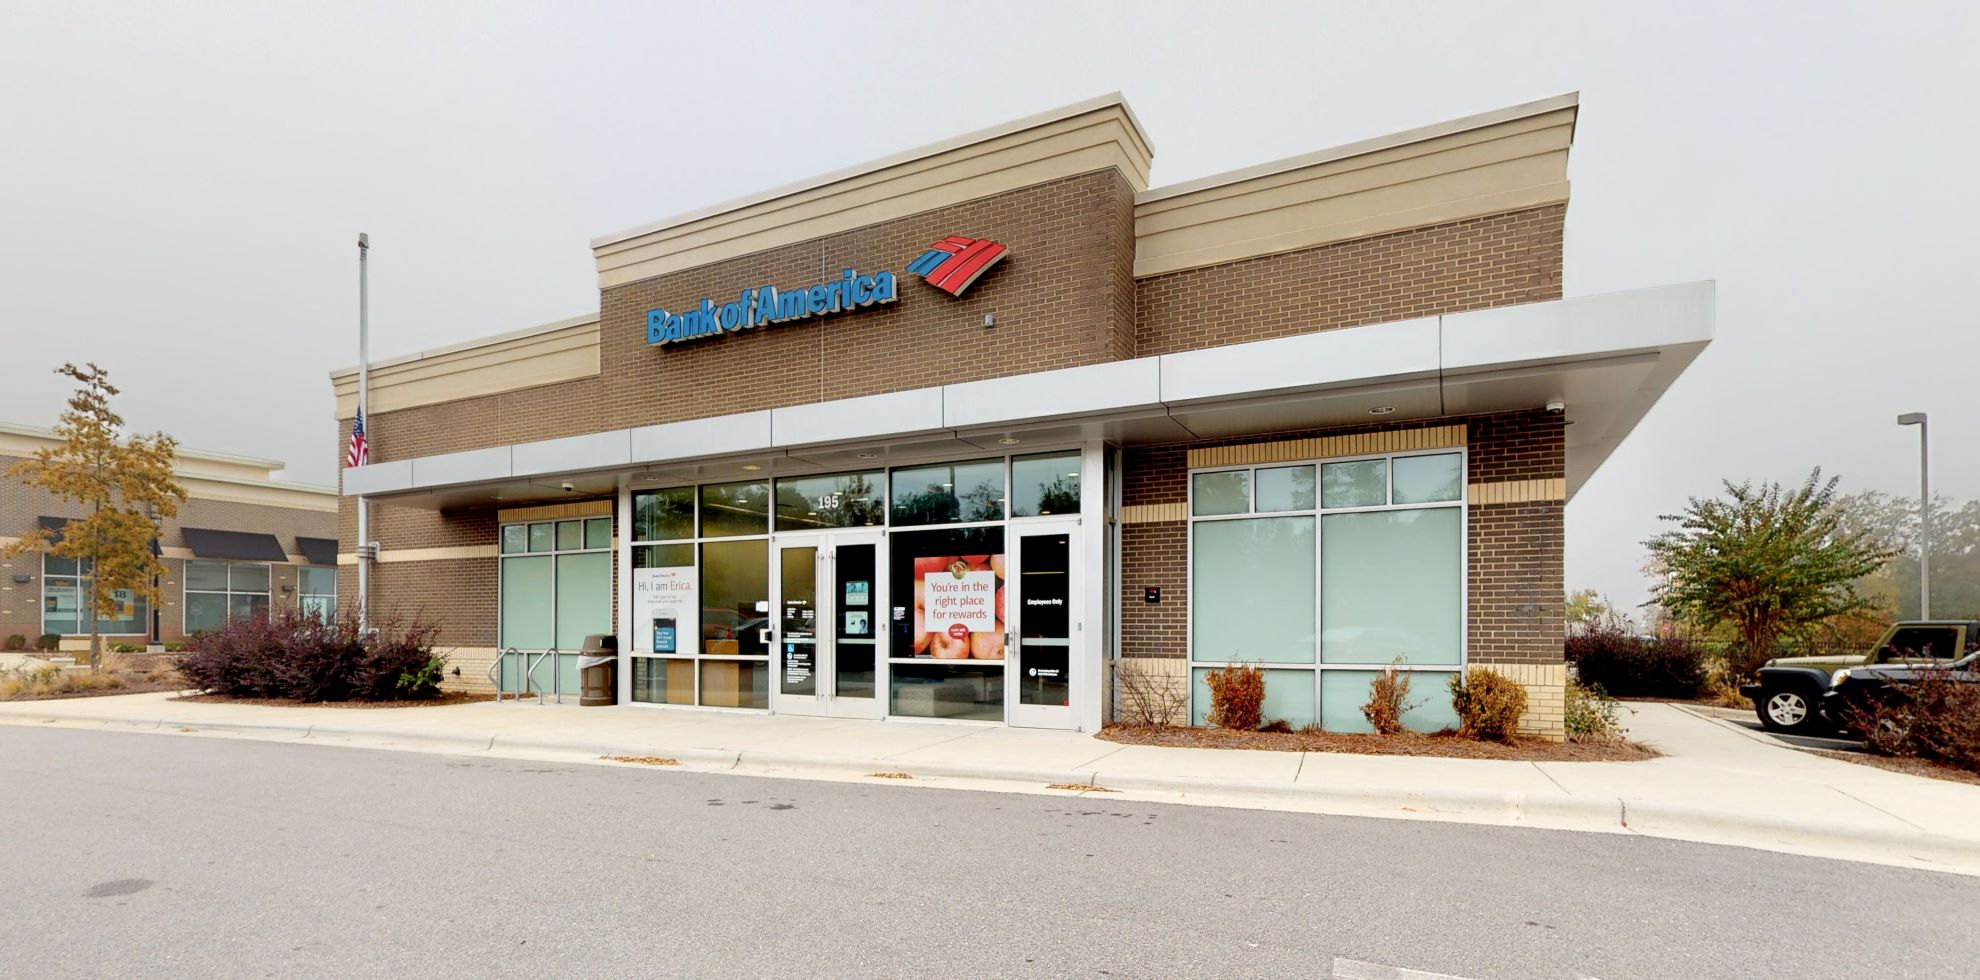 Bank of America financial center with drive-thru ATM | 195 Grand Hill Pl, Holly Springs, NC 27540